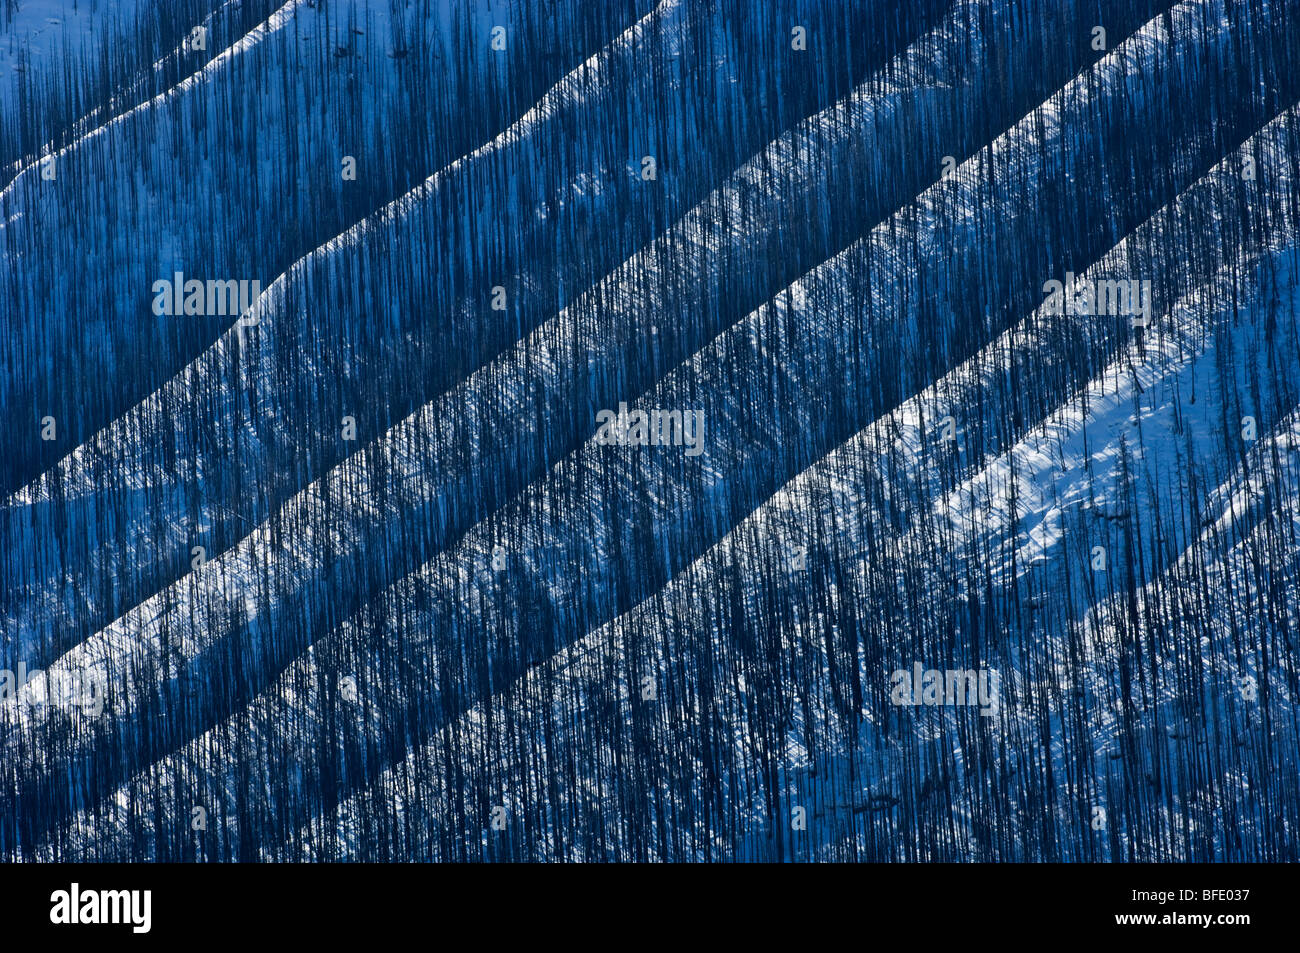 Burnt trees on snowy mountain slope, Verendrye, Kootenay National Park, British Columbia, Canada - Stock Image